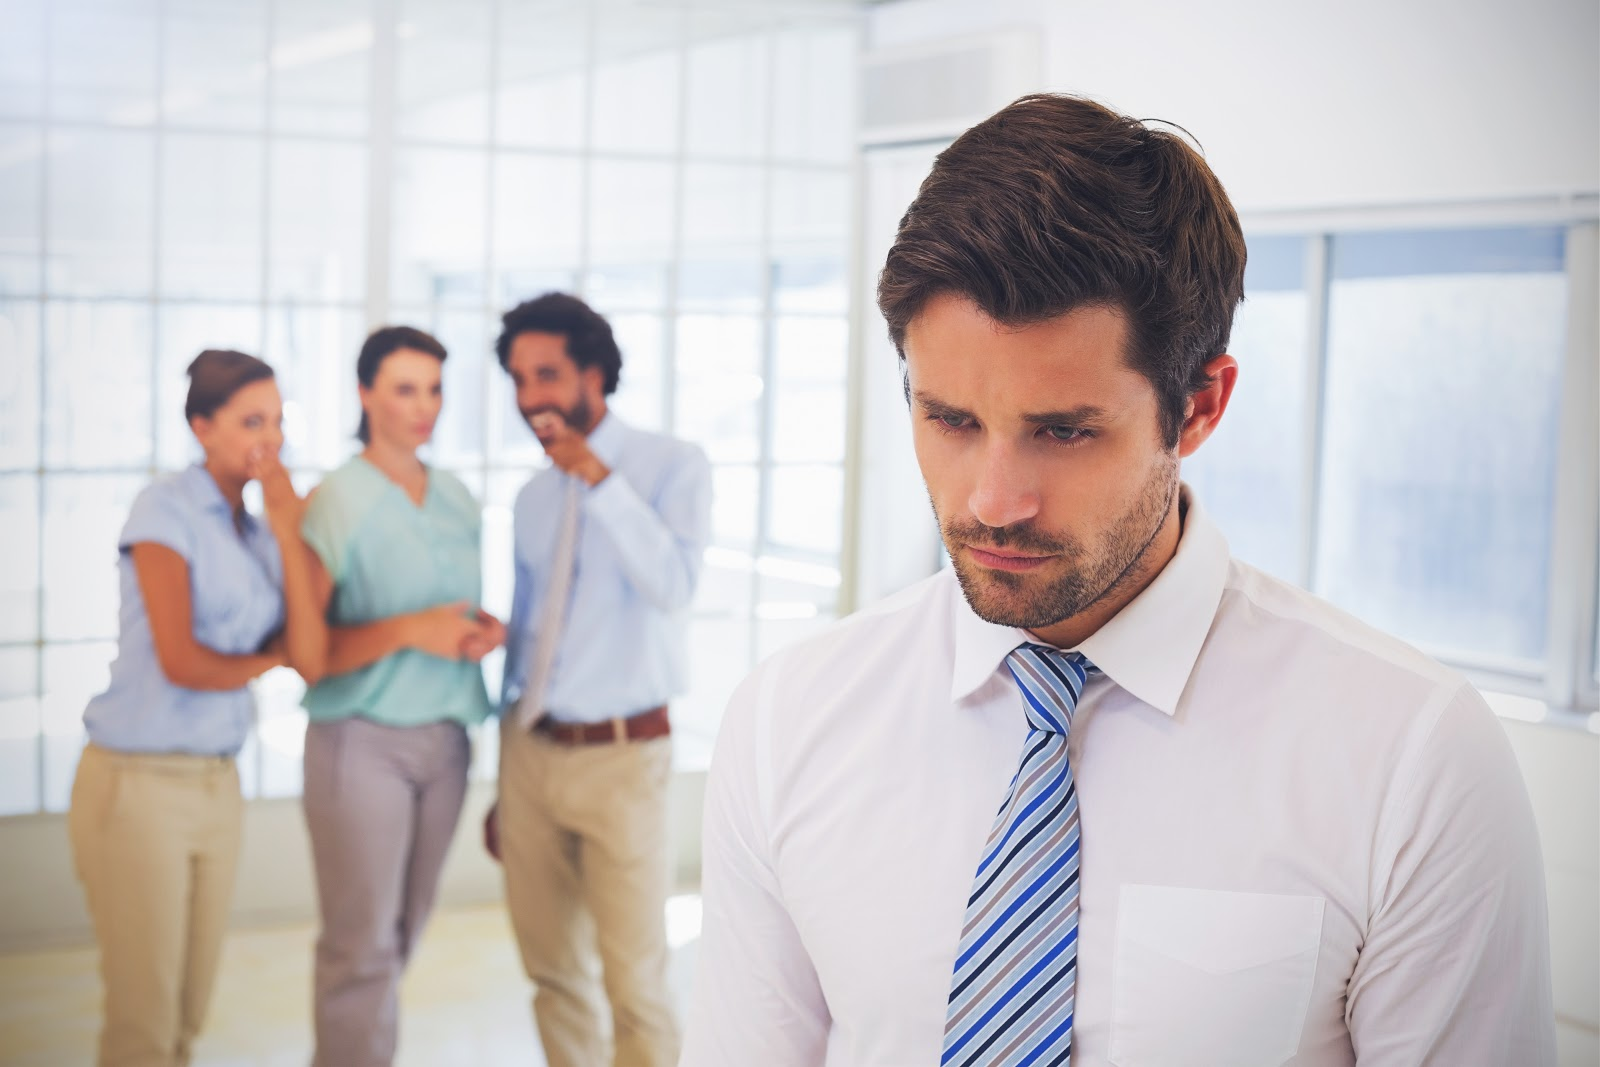 A man looking upset while coworkers whisper behind him